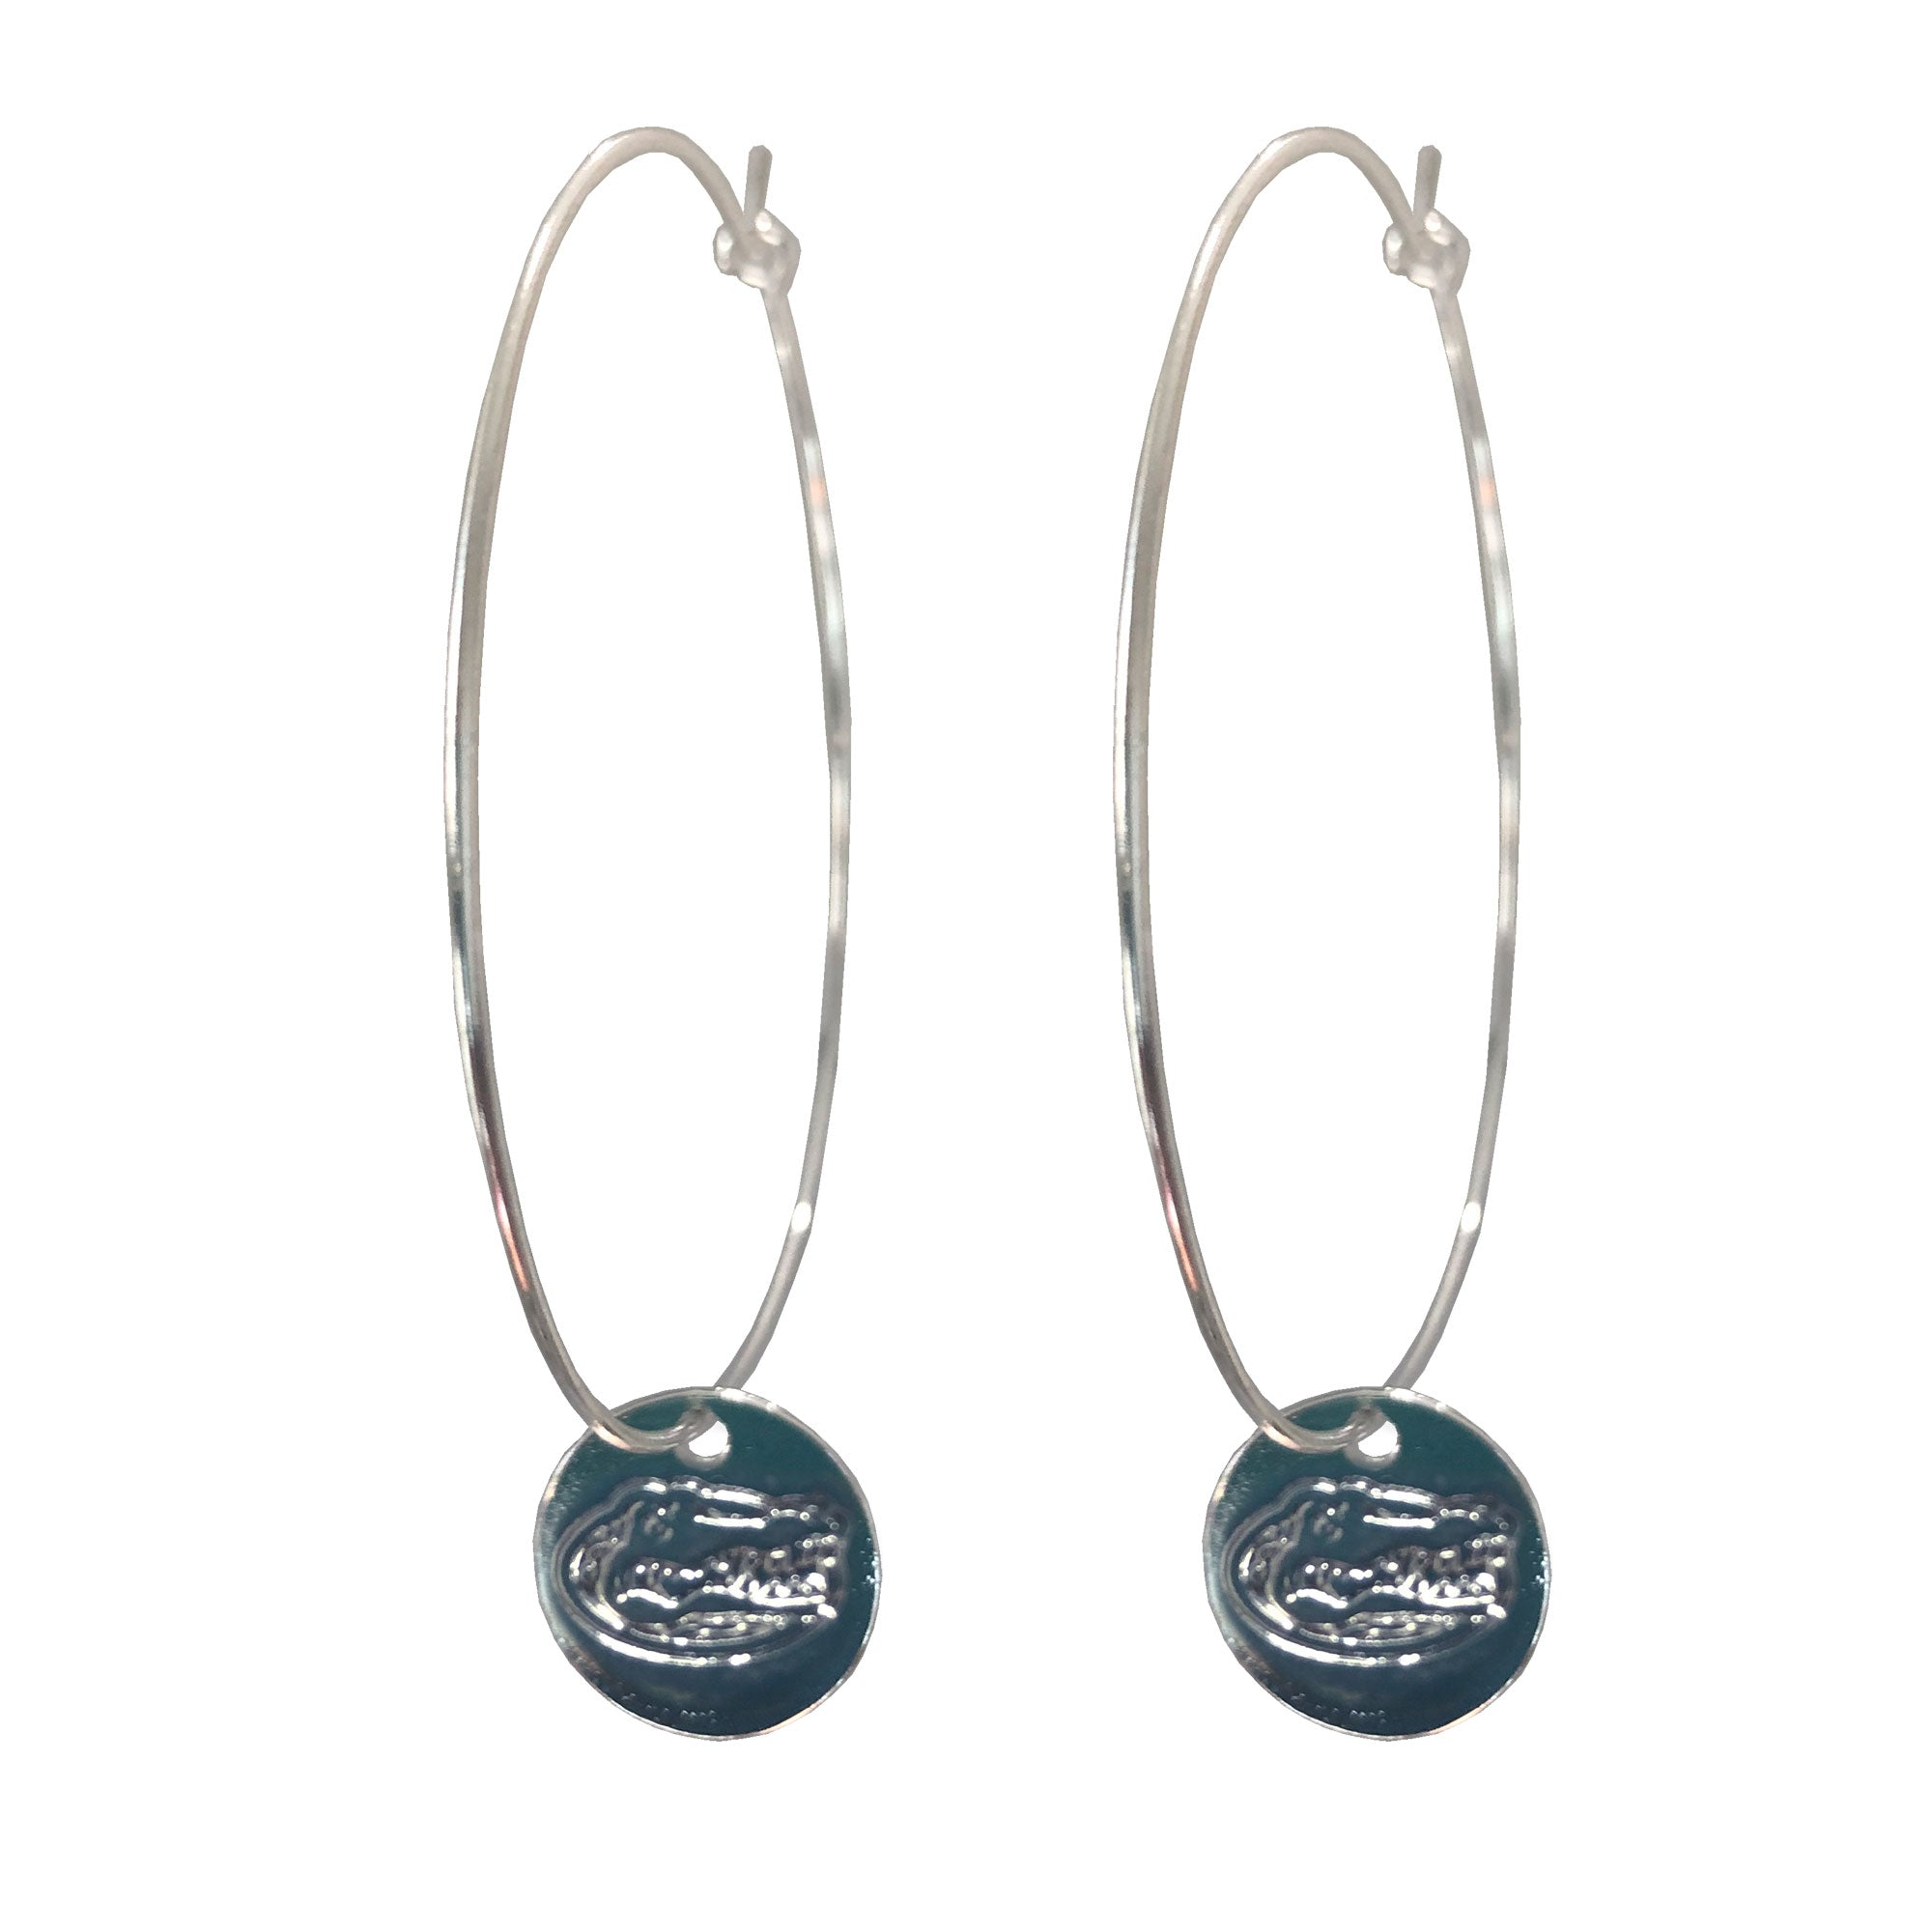 FLORIDA GATORS QUINN EARRINGS